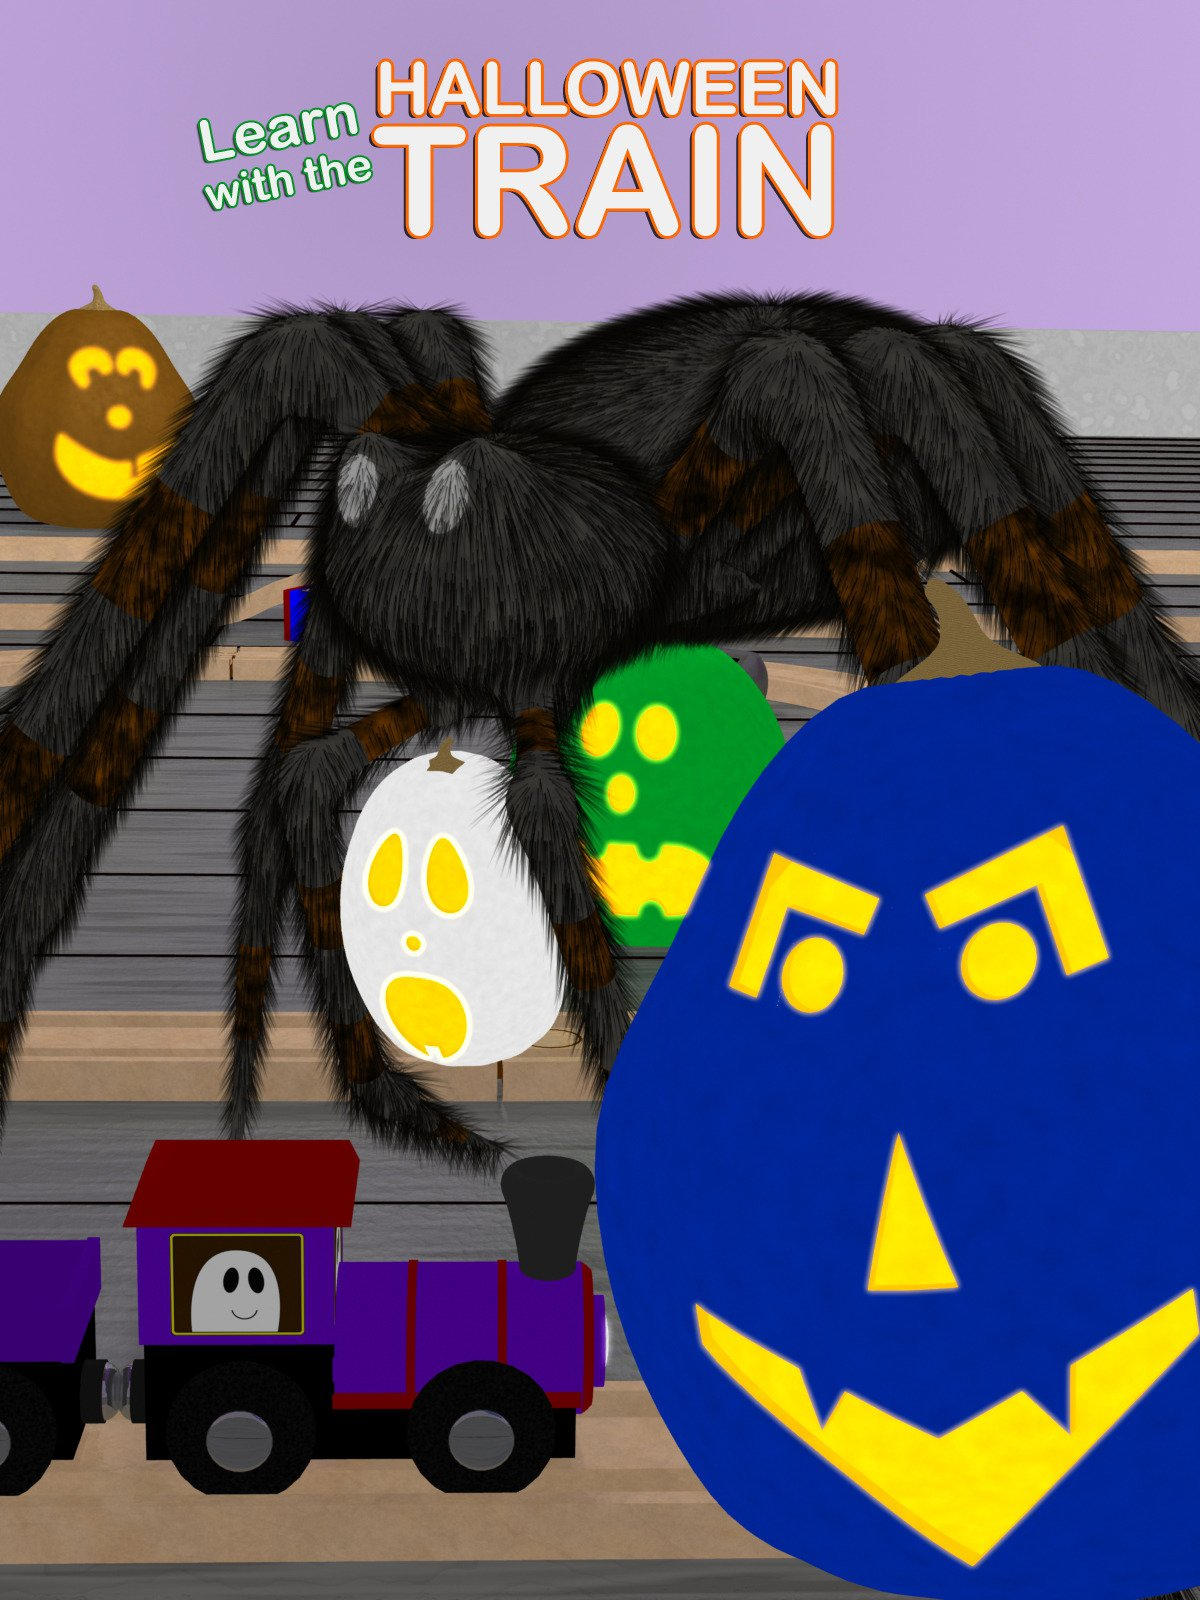 Learn with the Halloween Train